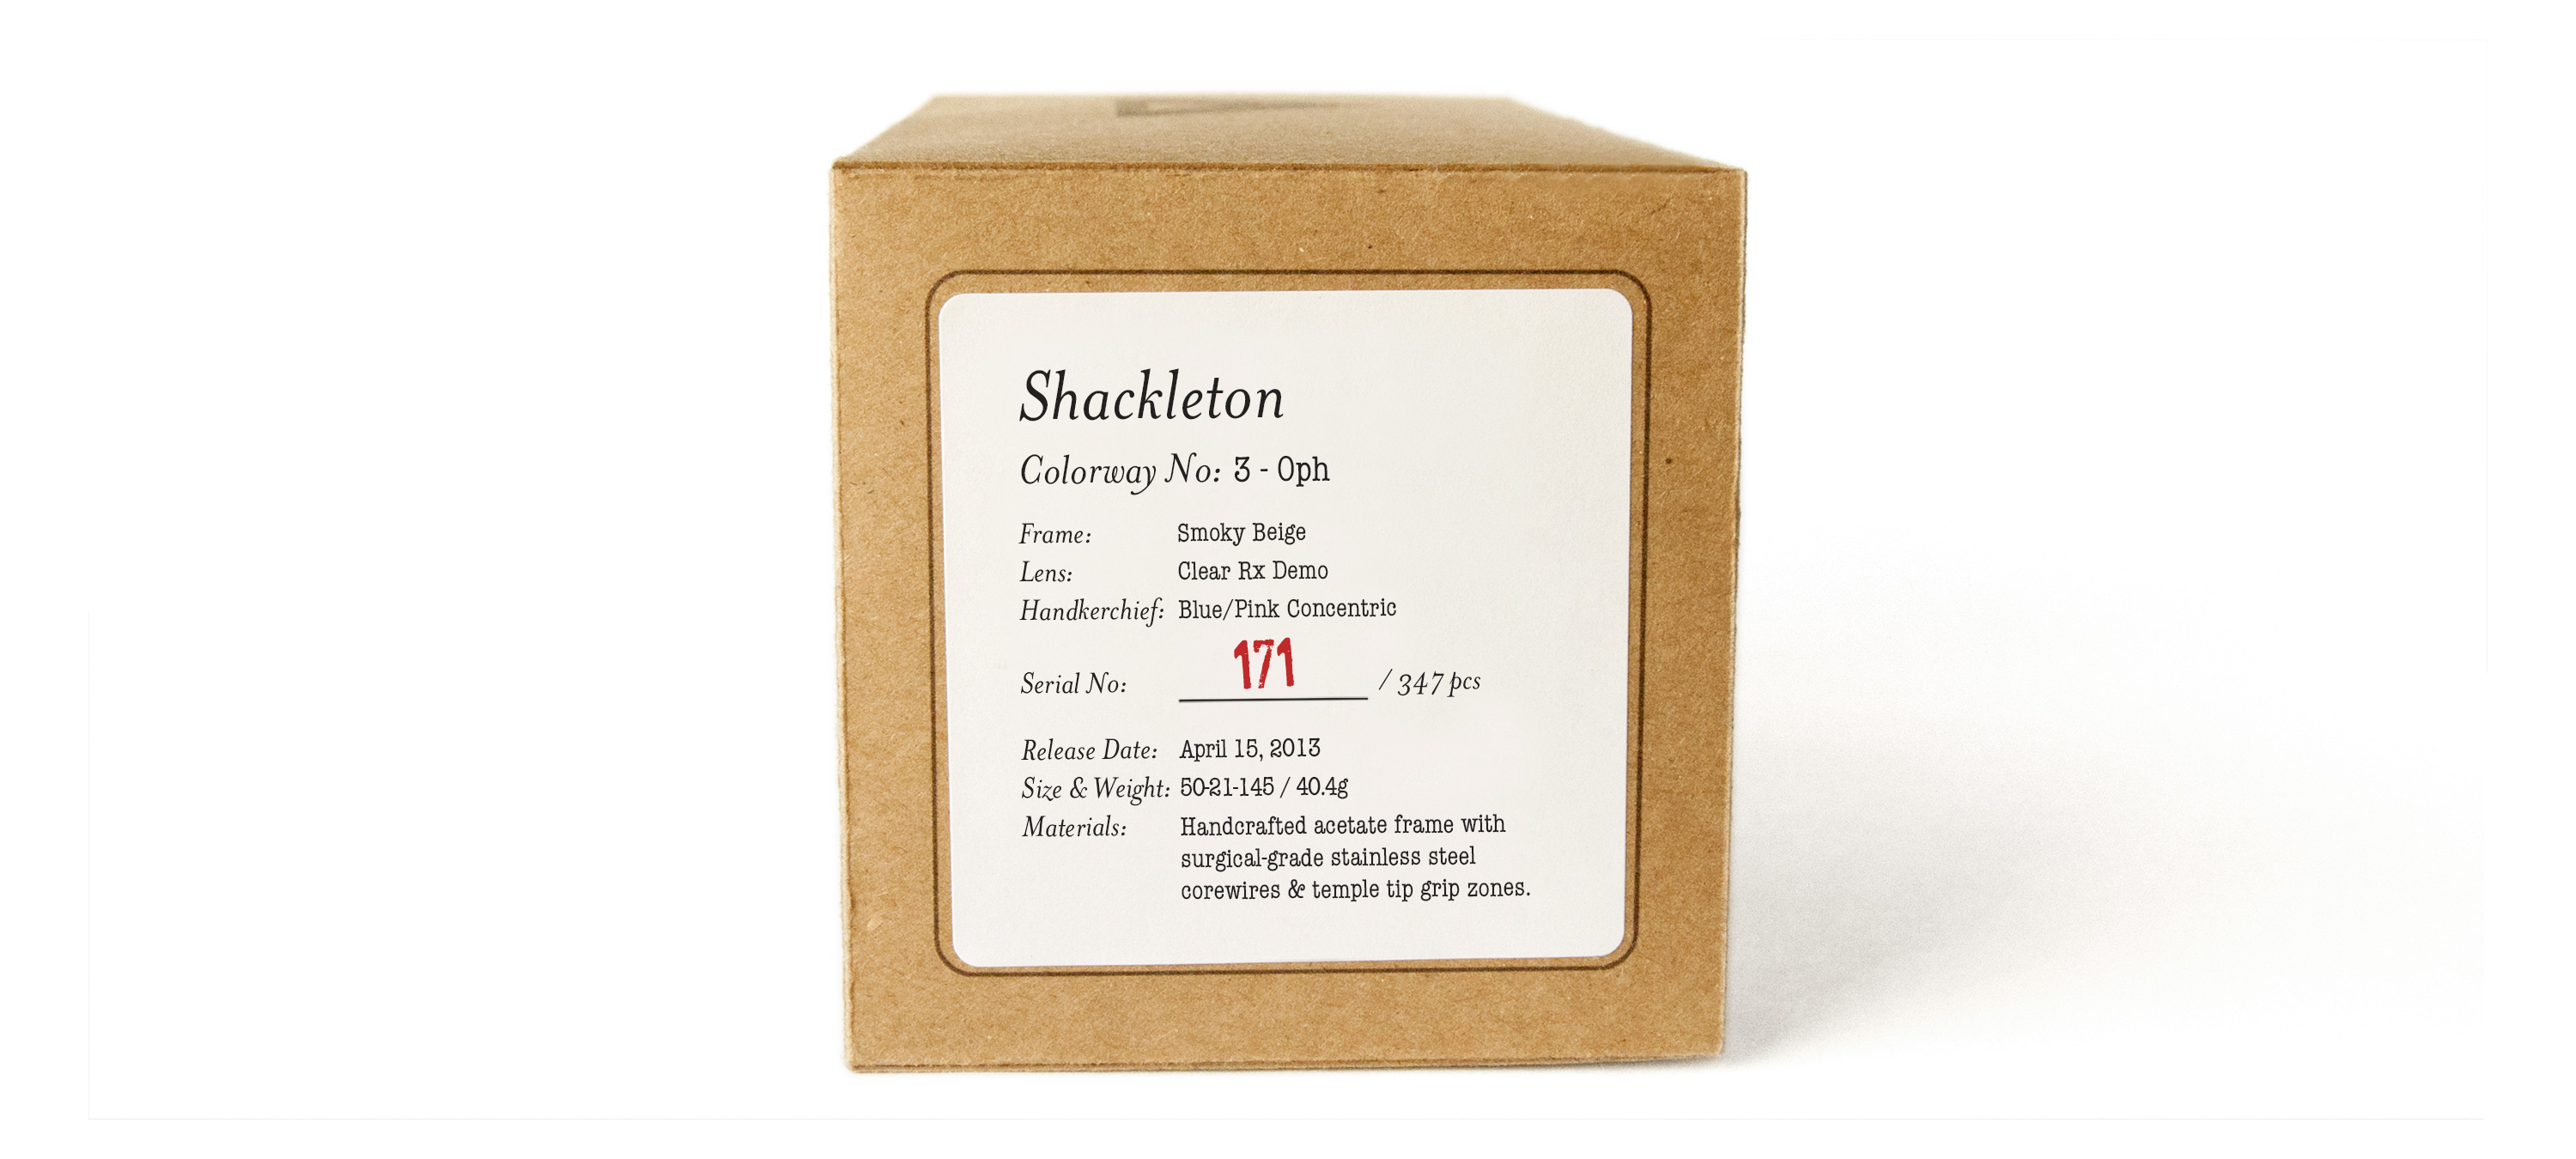 outer_pkg_label_shackleton_oph_03